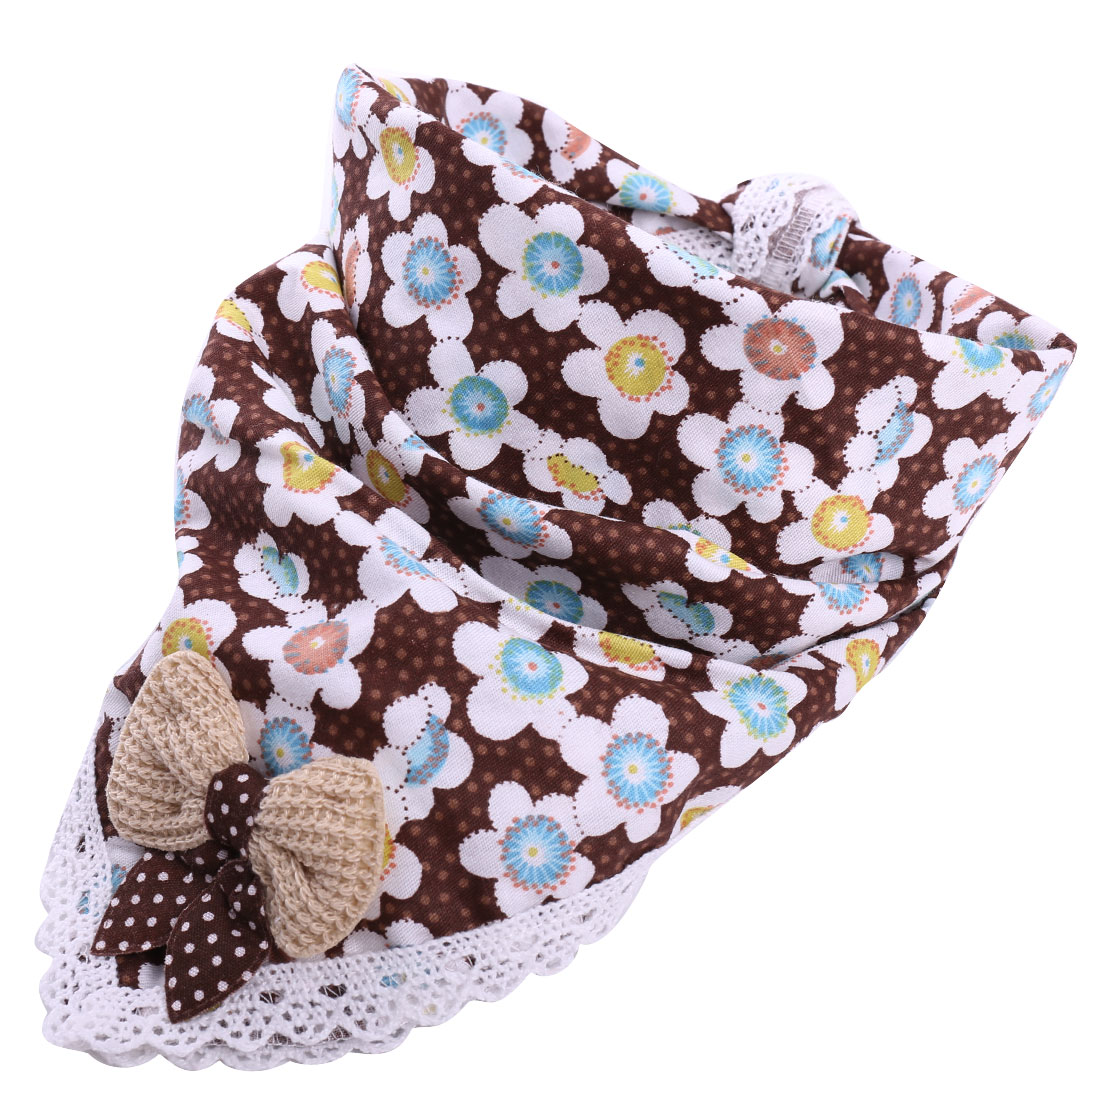 Sweet Flower Prints Brown Square Lunch Dinner Napkins for Kids